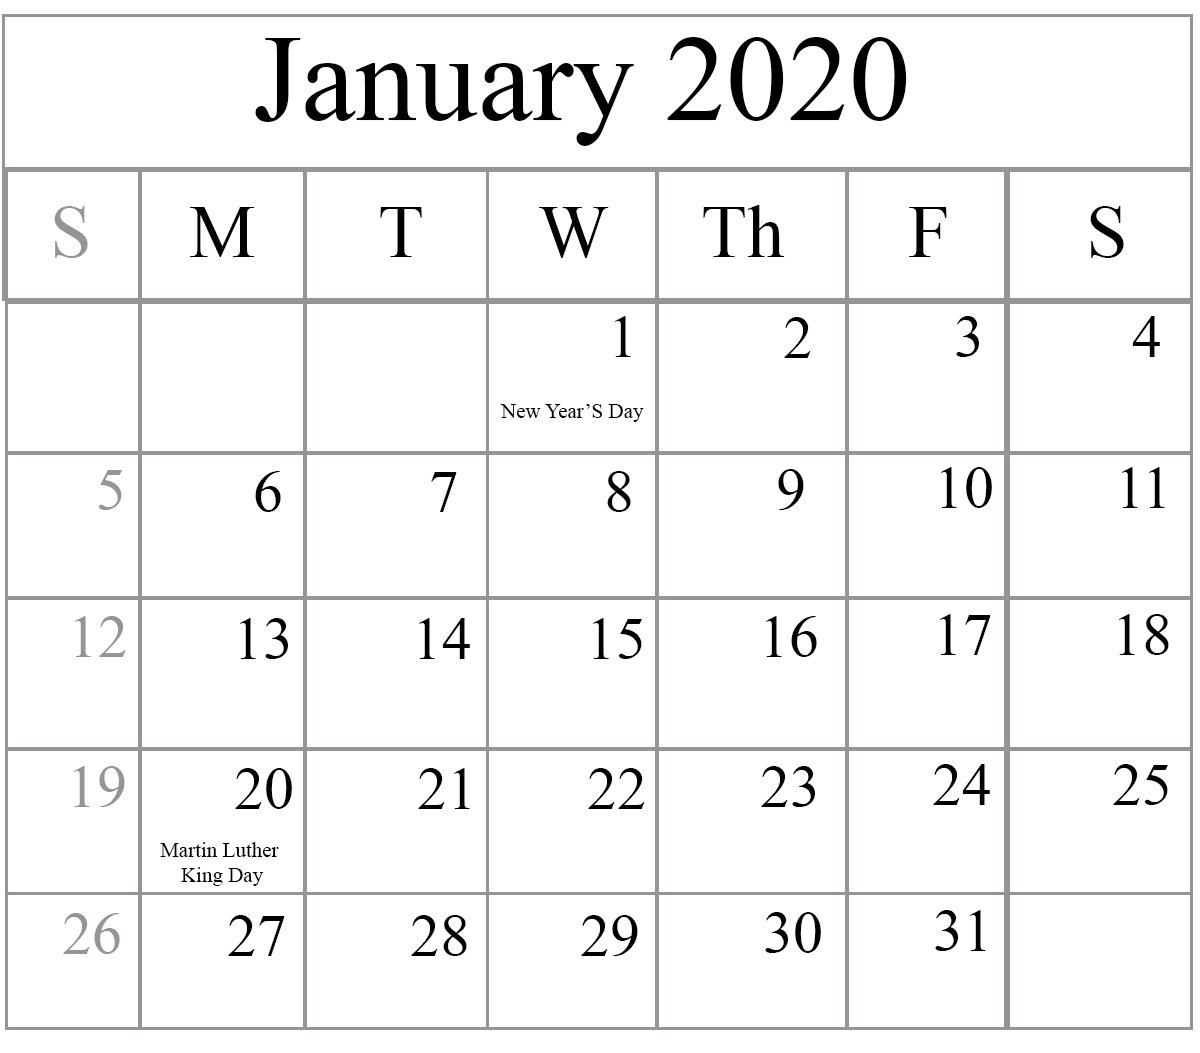 Free January 2020 Printable Calendar In Pdf, Excel & Word for Word Calendar Template 2020